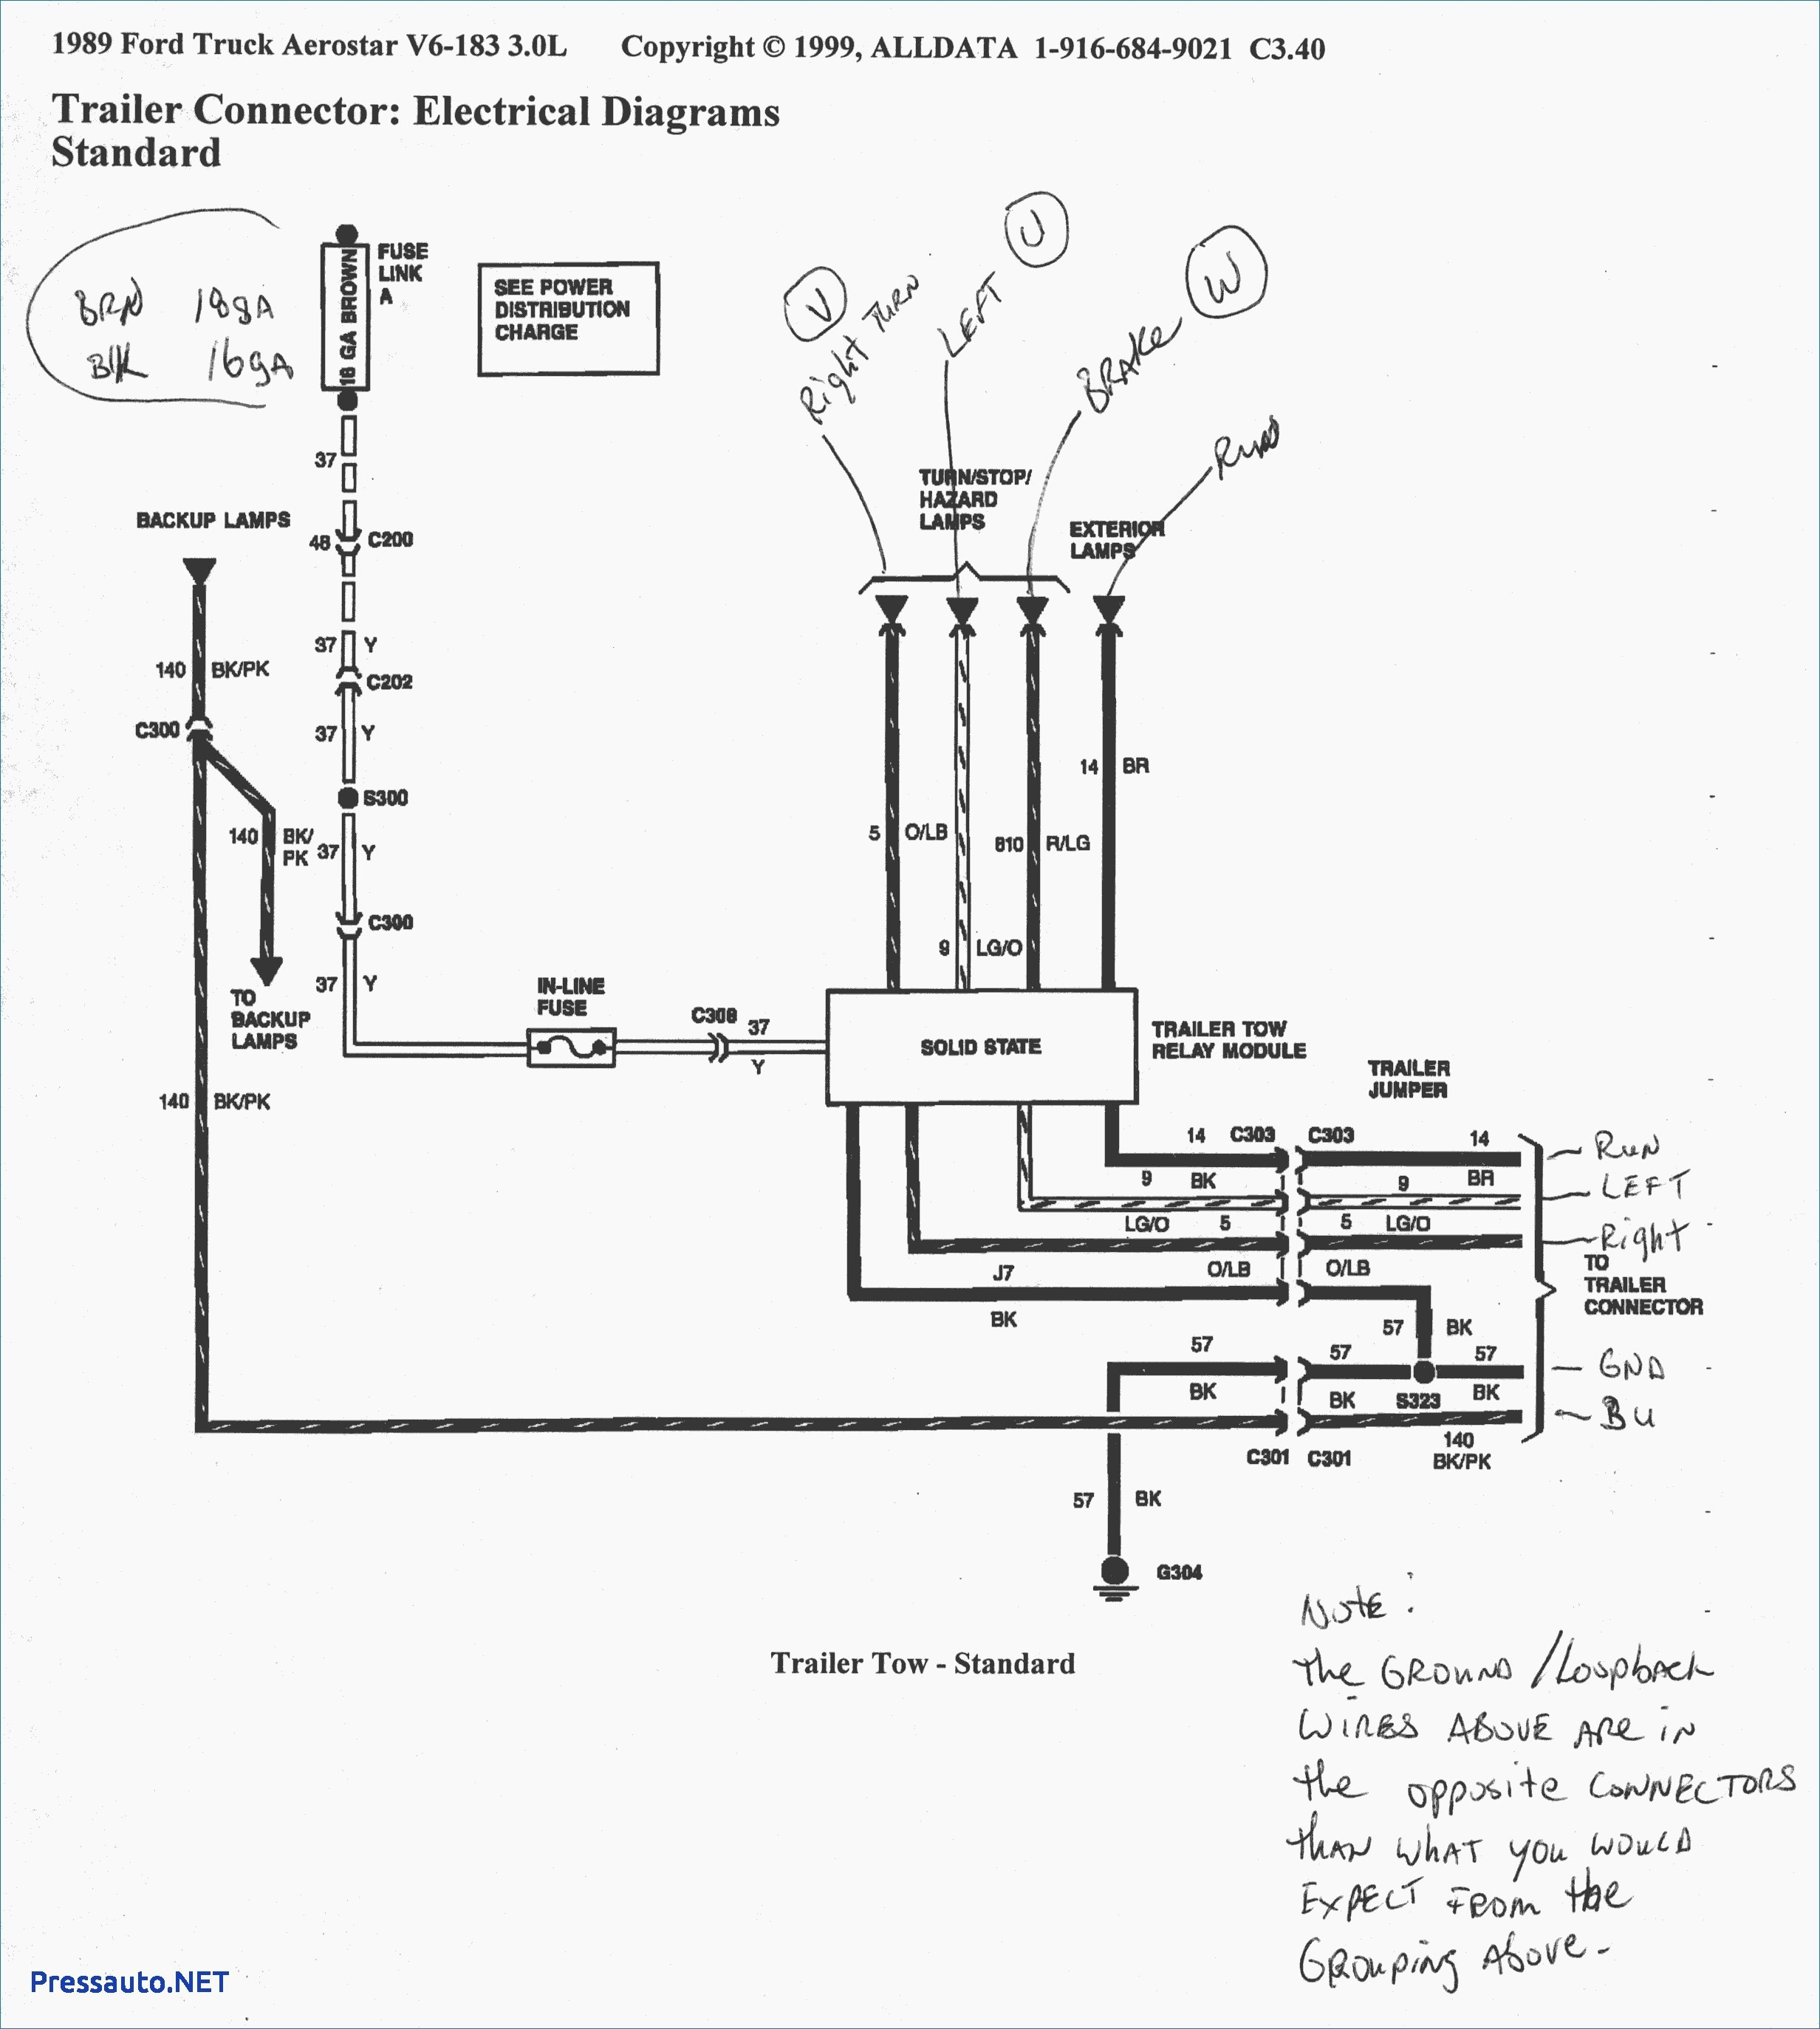 2005 ford f150 trailer wiring diagram Download-2002 Ford F150 Trailer Wiring Harness Diagrams 1990 Diagram 6-j